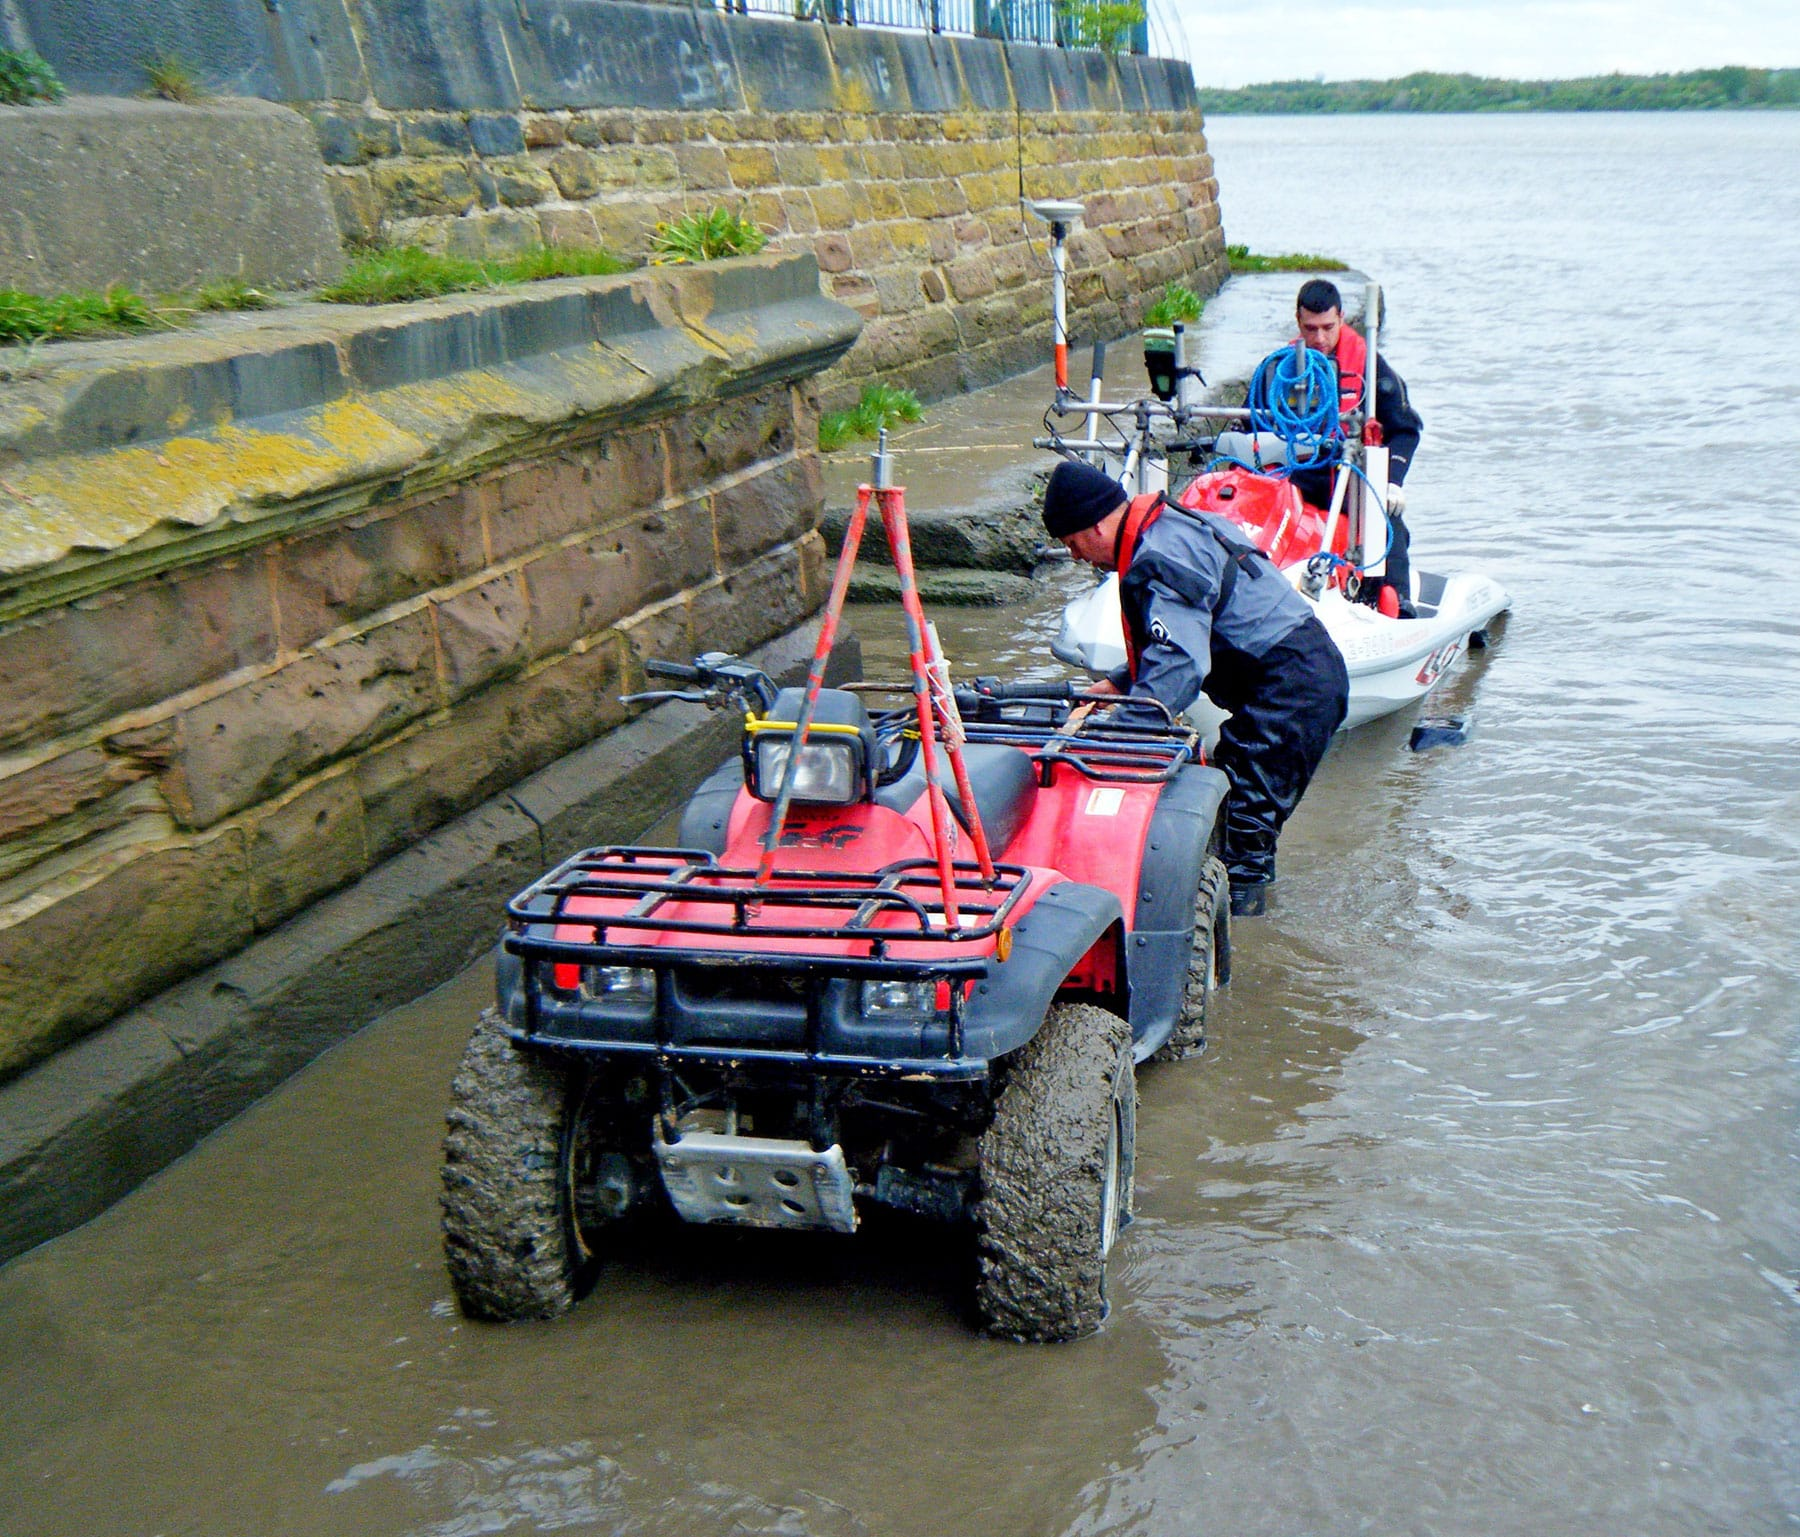 Quad bike nad jet ski used for surveying a river.